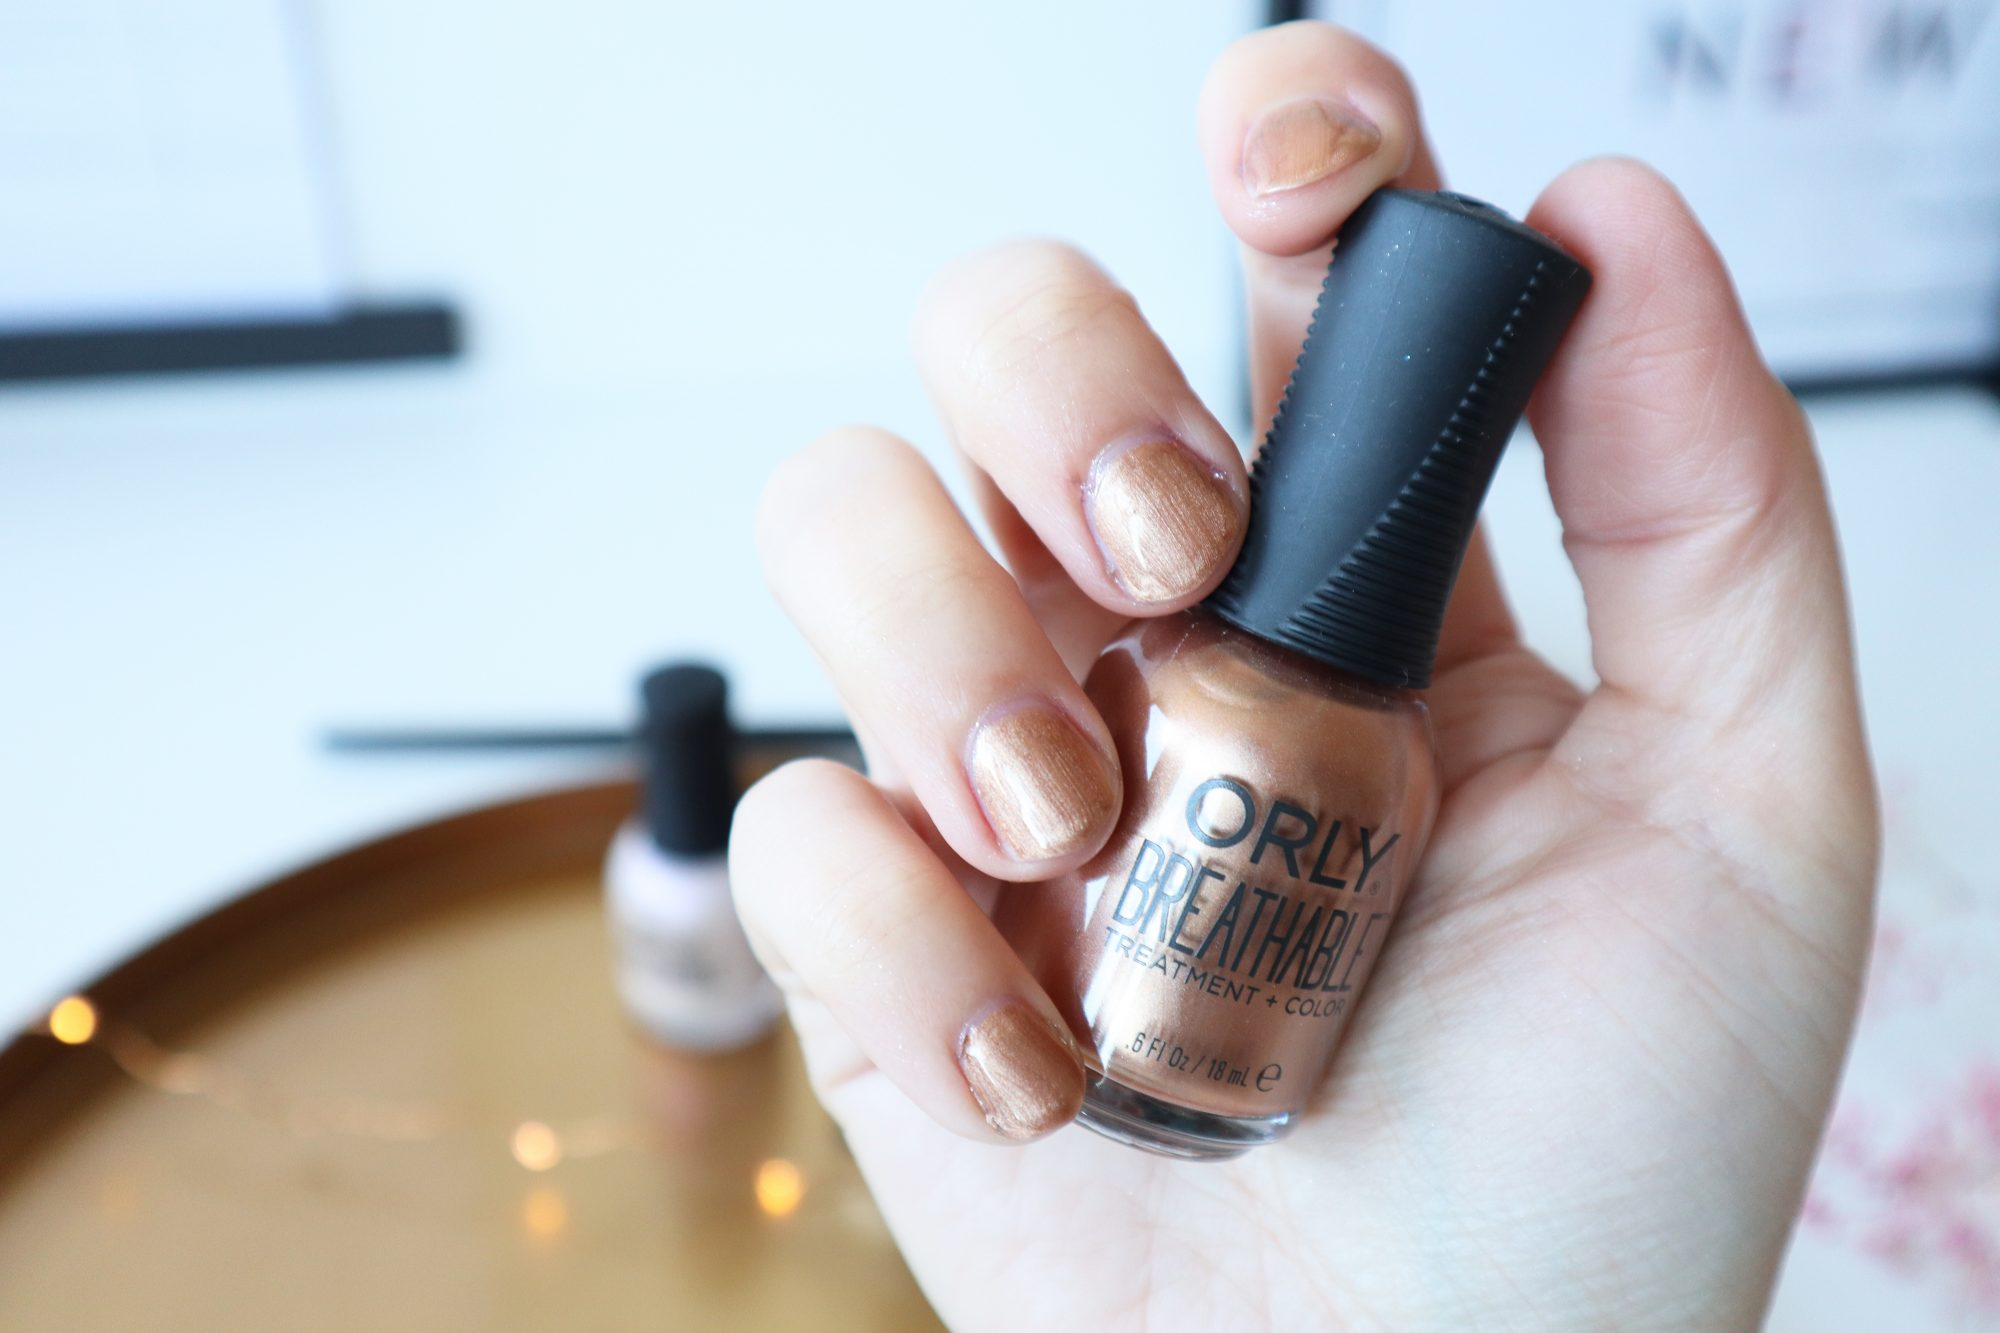 ORLY Breathable